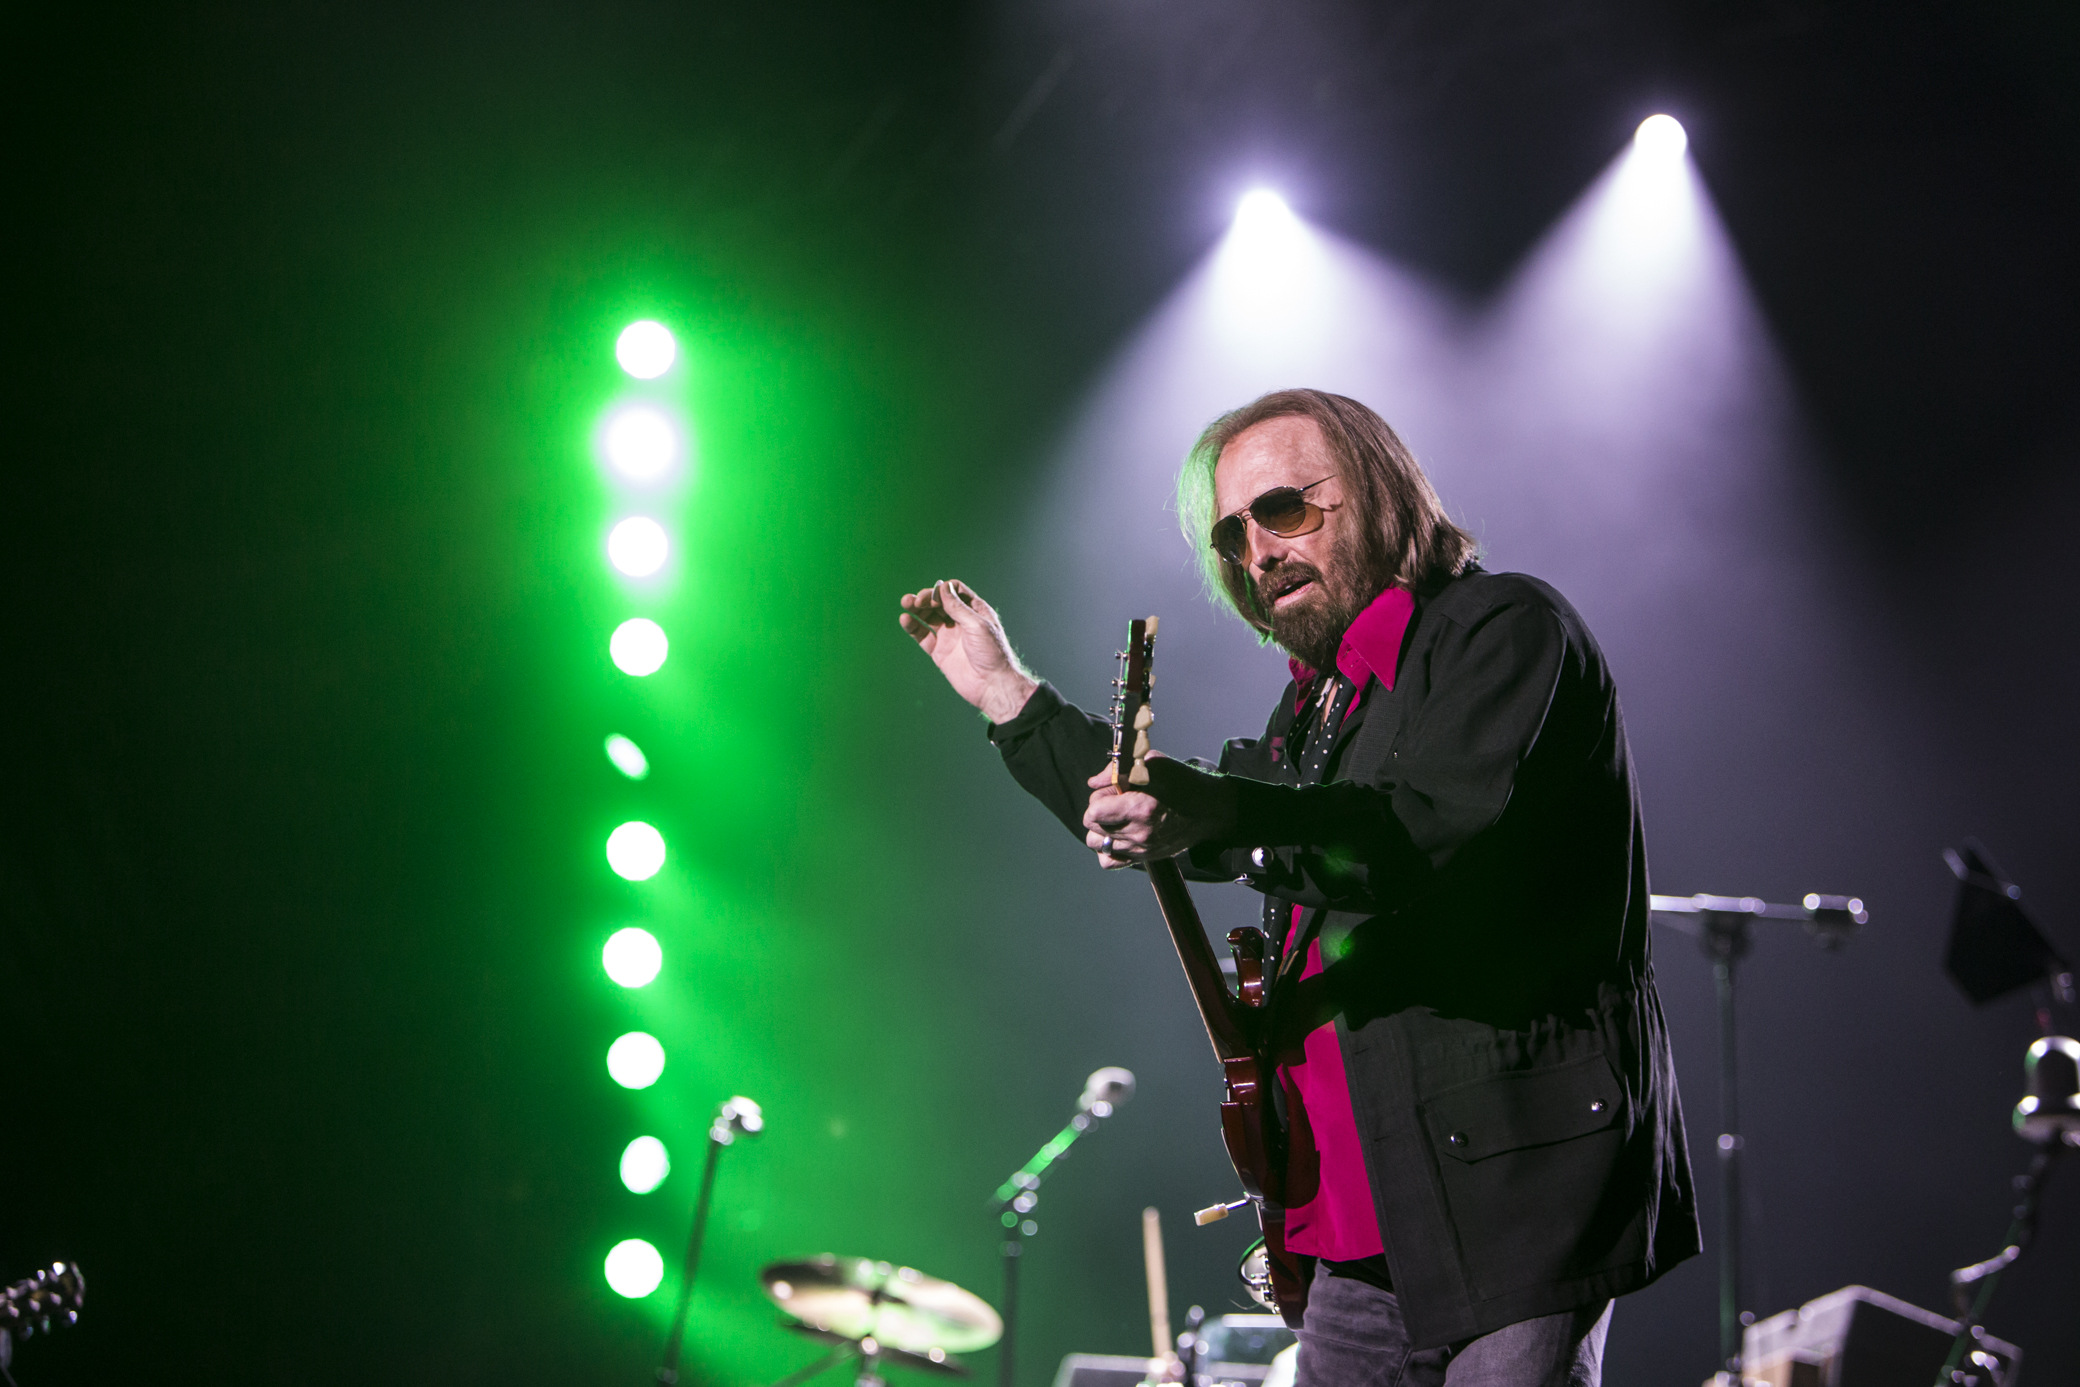 tom petty and the heartbreakers 11 Tom Petty and the Heartbreakers.11